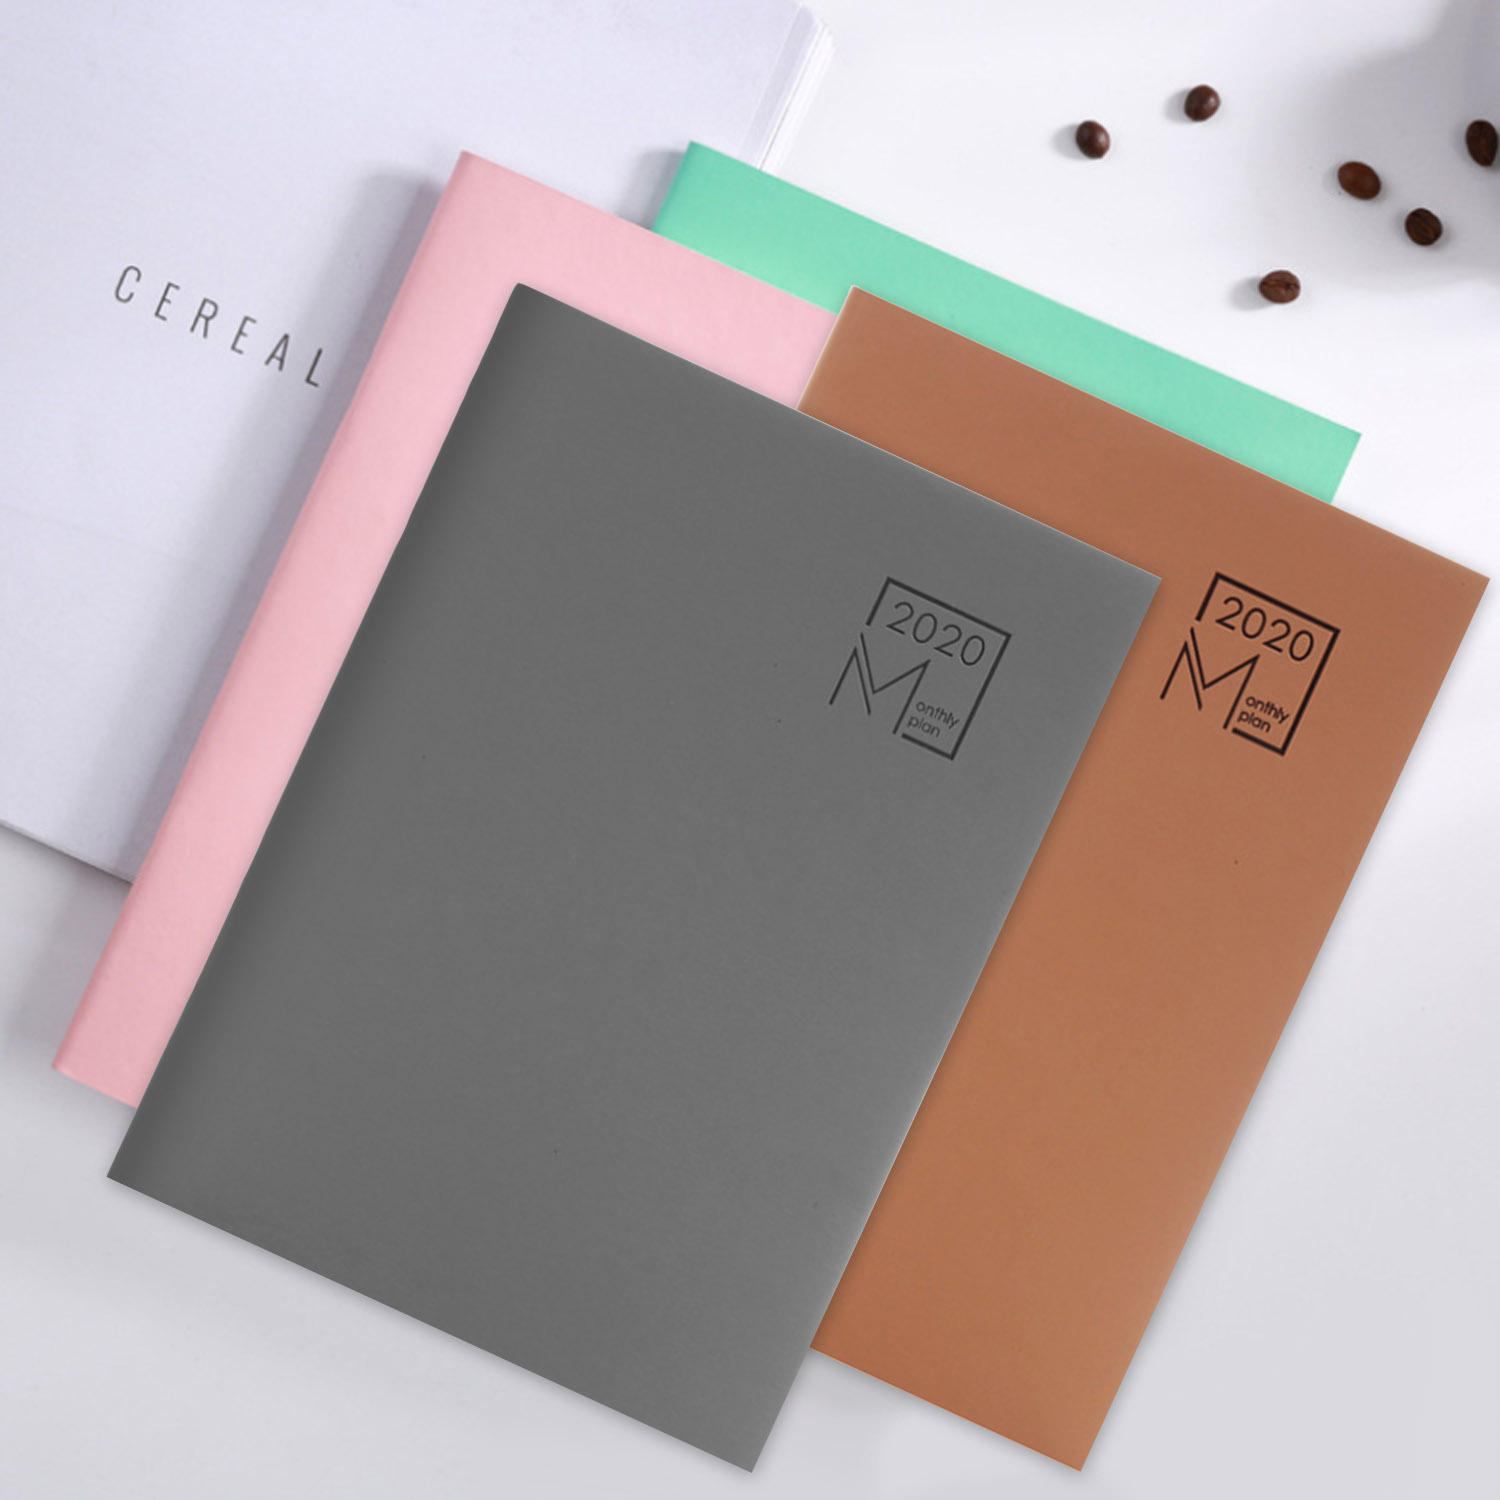 B5 <font><b>2020</b></font> Calendar Monthly <font><b>Planner</b></font> 365 Days Daily Schedule Plan Notebooks with 48 Pages for Home Office Students Supplies image